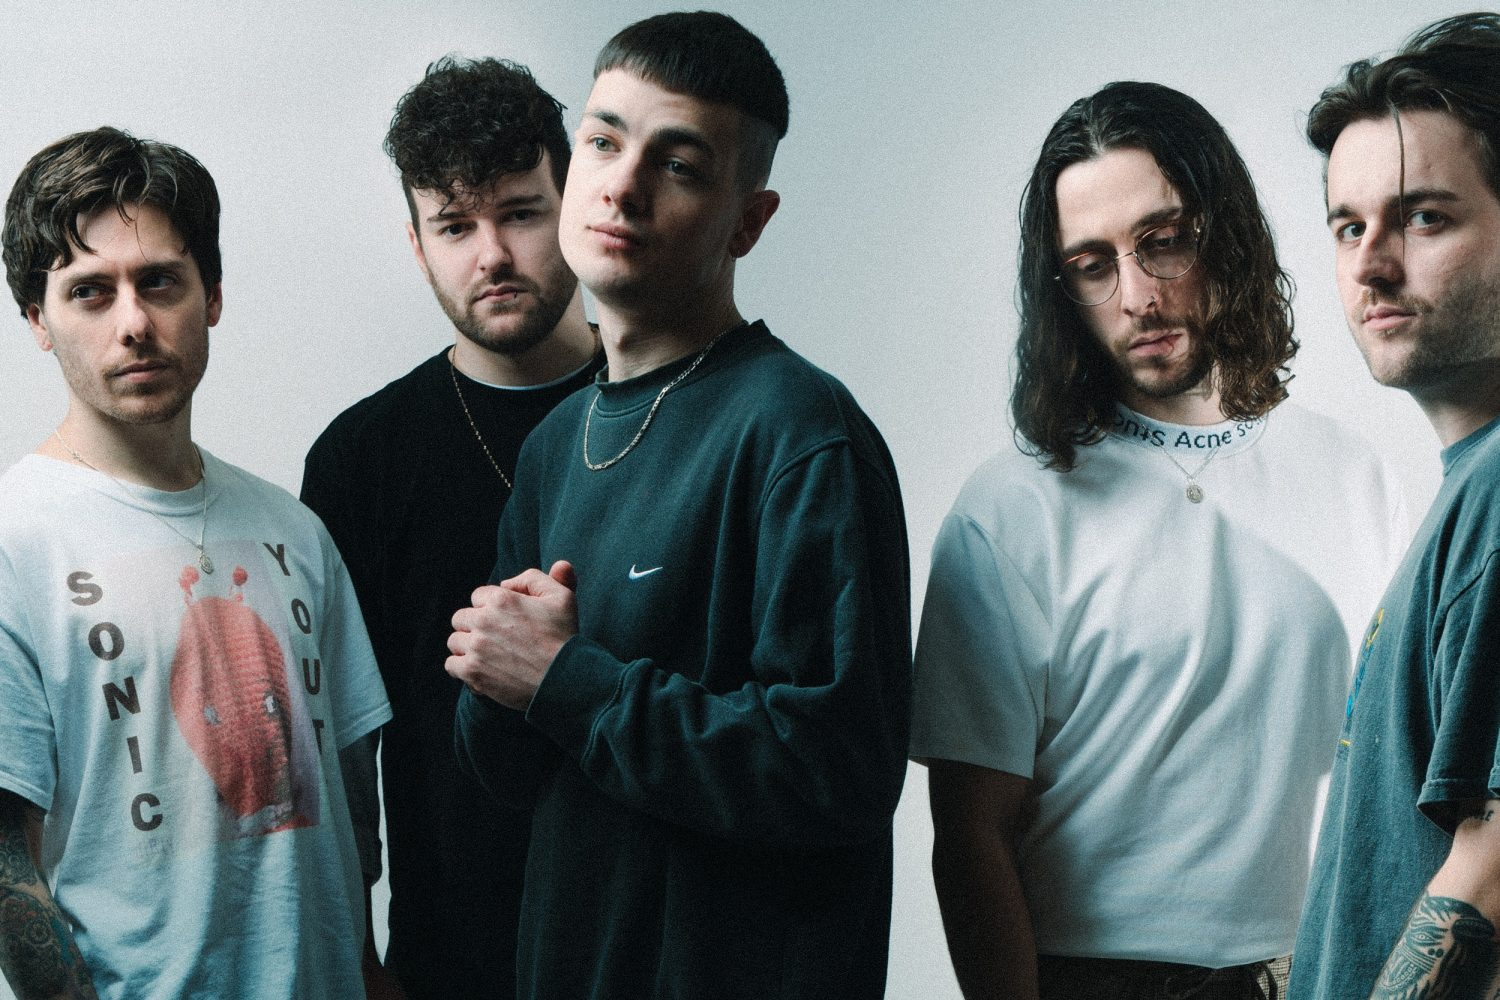 Boston Manor are hosting a virtual art show, including a short documentary about their latest album